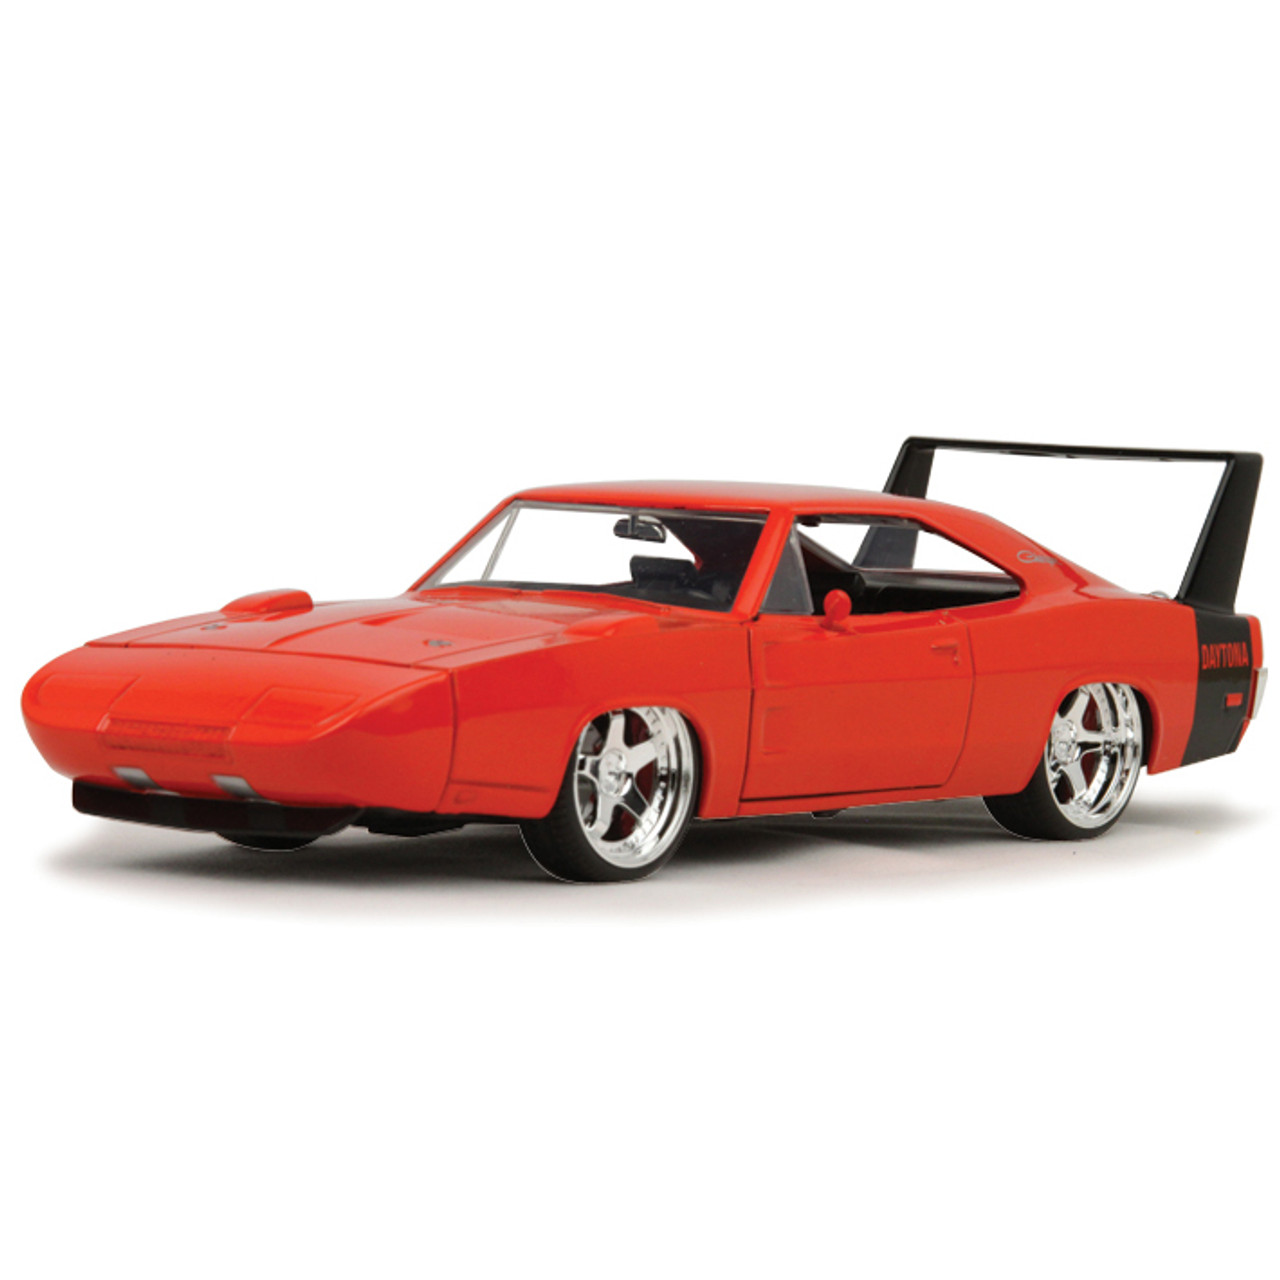 1969 Dodge Charger Daytona Custom 1 24 Scale Diecast Model By Jada Fairfield Collectibles The 1 Source For High Quality Diecast Scale Model Cars